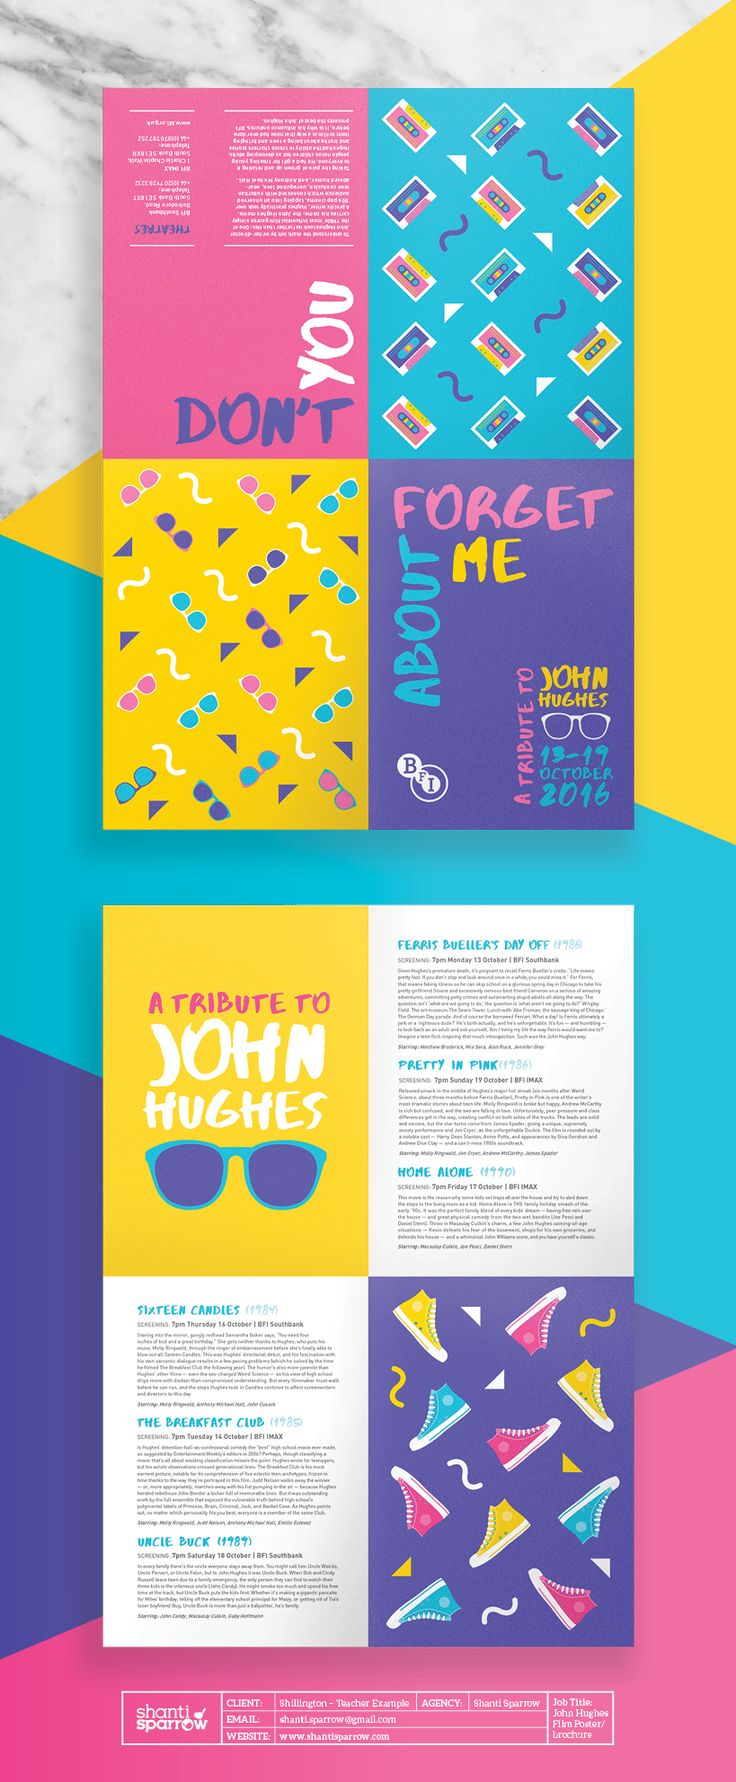 Poster design freelance - Design By Shanti Sparrow Www Shantisparrow Com Client Shillington Project Name Brochure